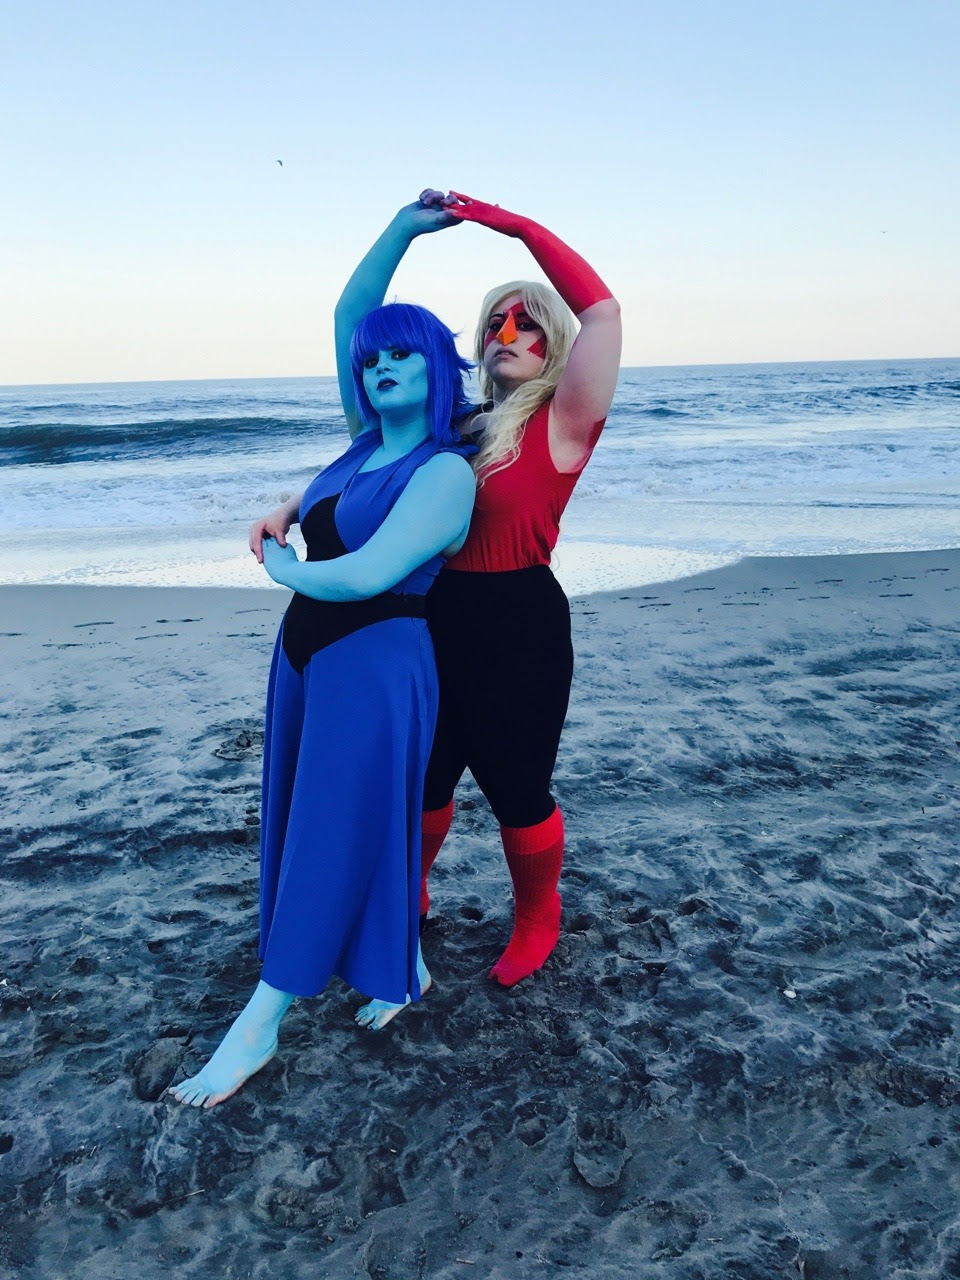 Animenext day 1! This was my debut for Lapis and I was very proud of her. If you have any pictures please tag me or send them! And follow our cosplay group @merakikaicosplay